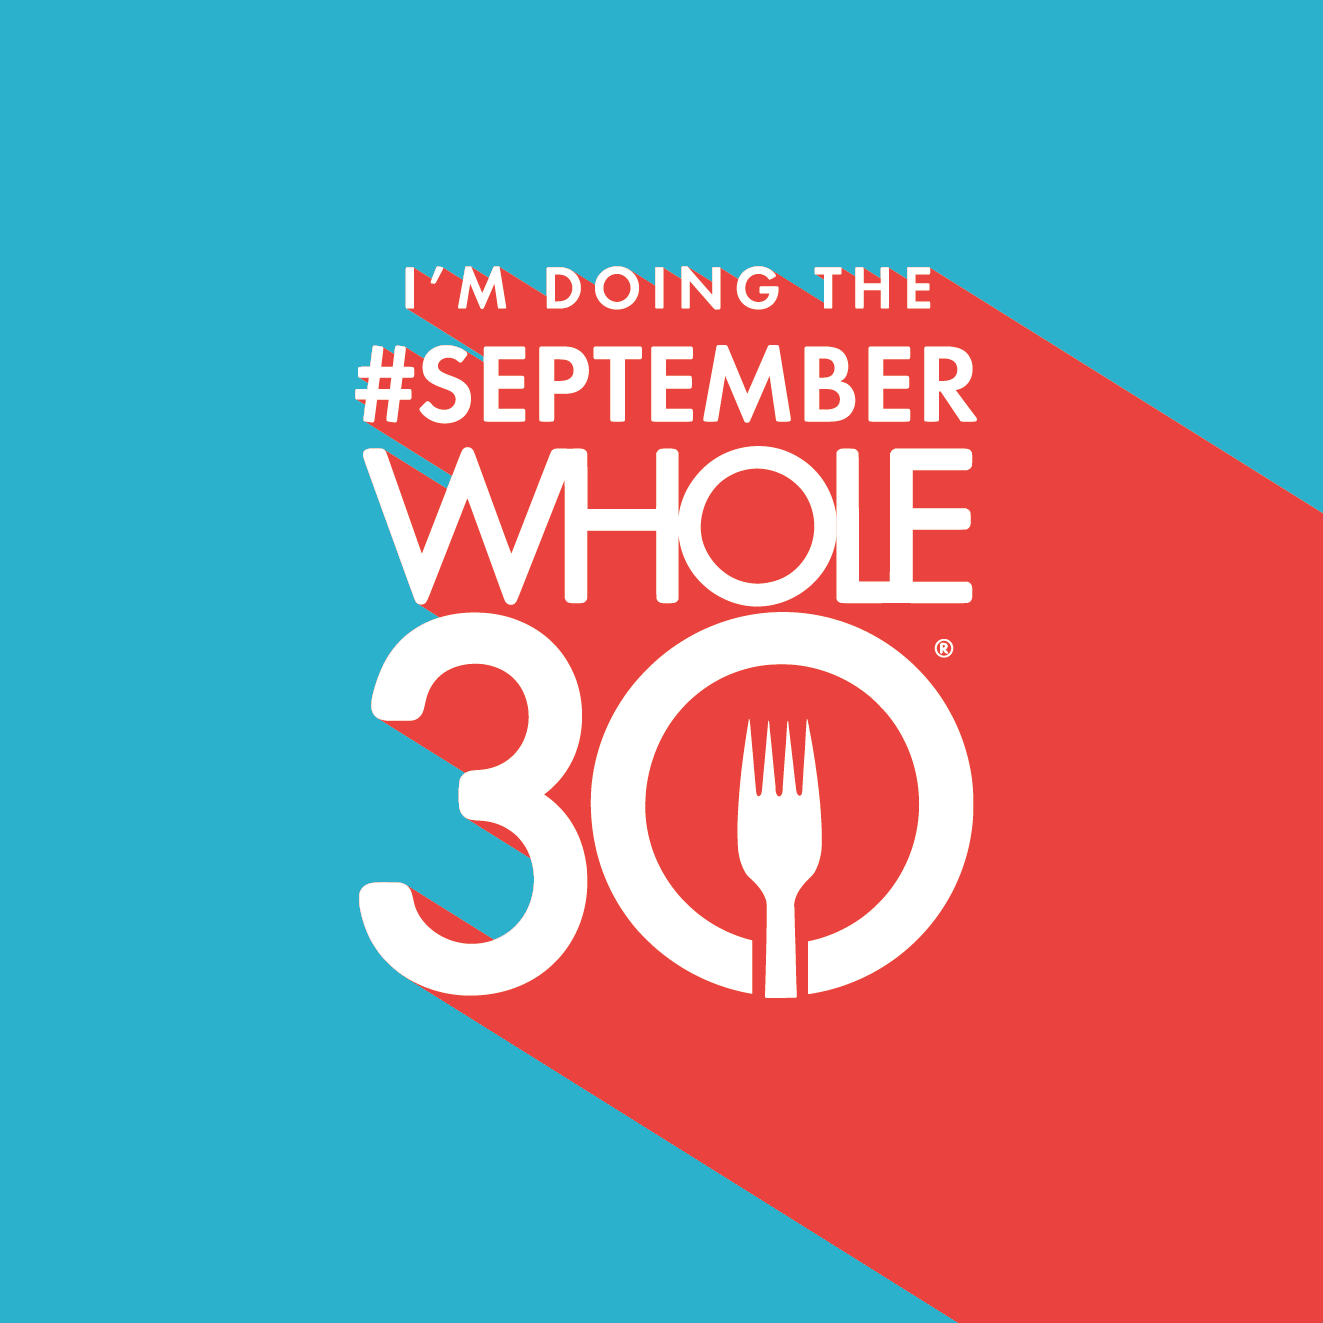 image about Whole 30 Calendar Printable titled Your Unique #SeptemberWhole30 Percentage Graphics and